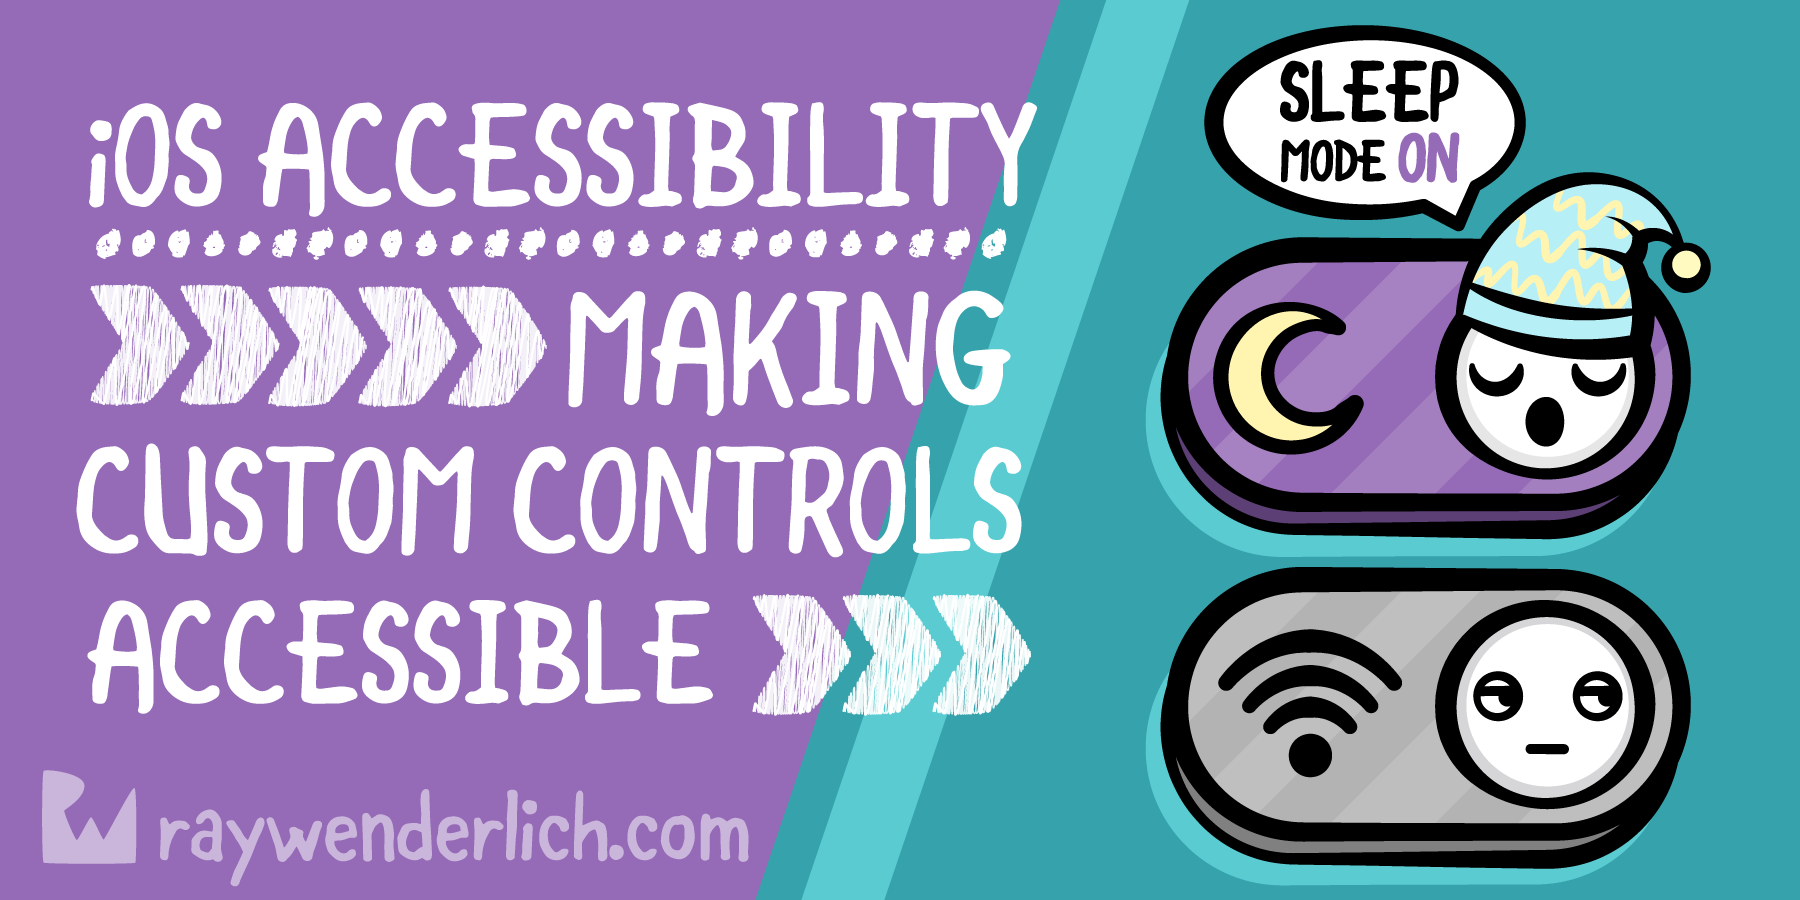 iOS Accessibility Tutorial: Making Custom Controls Accessible [FREE]